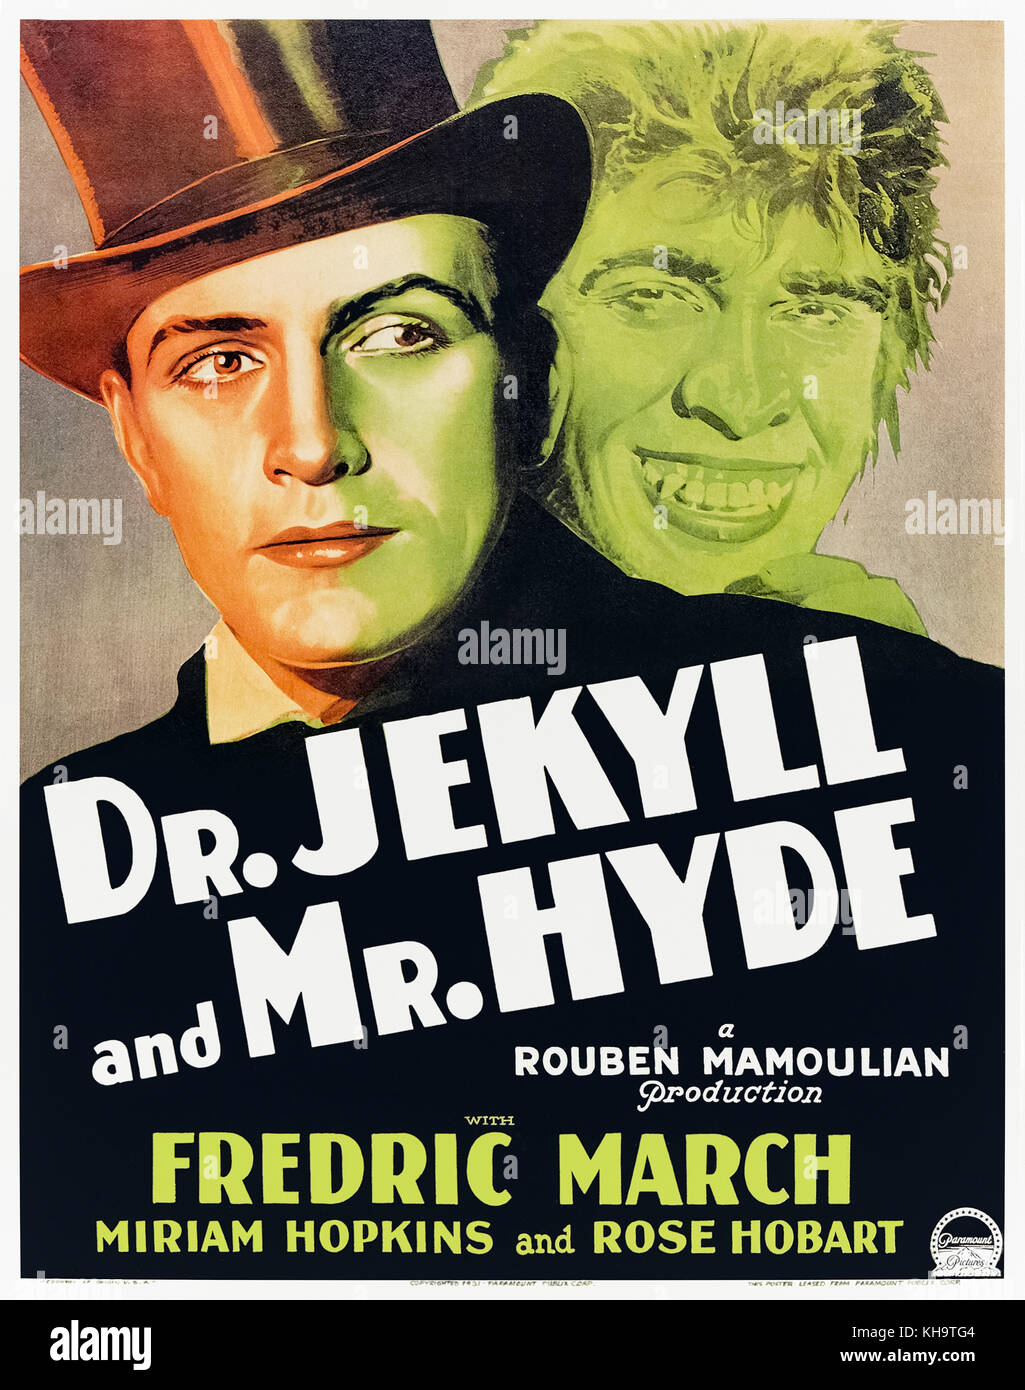 Dr. Jekyll and Mr. Hyde (1931) directed by Rouben Mamoulian and starring Fredric March, Miriam Hopkins and Rose - Stock Image